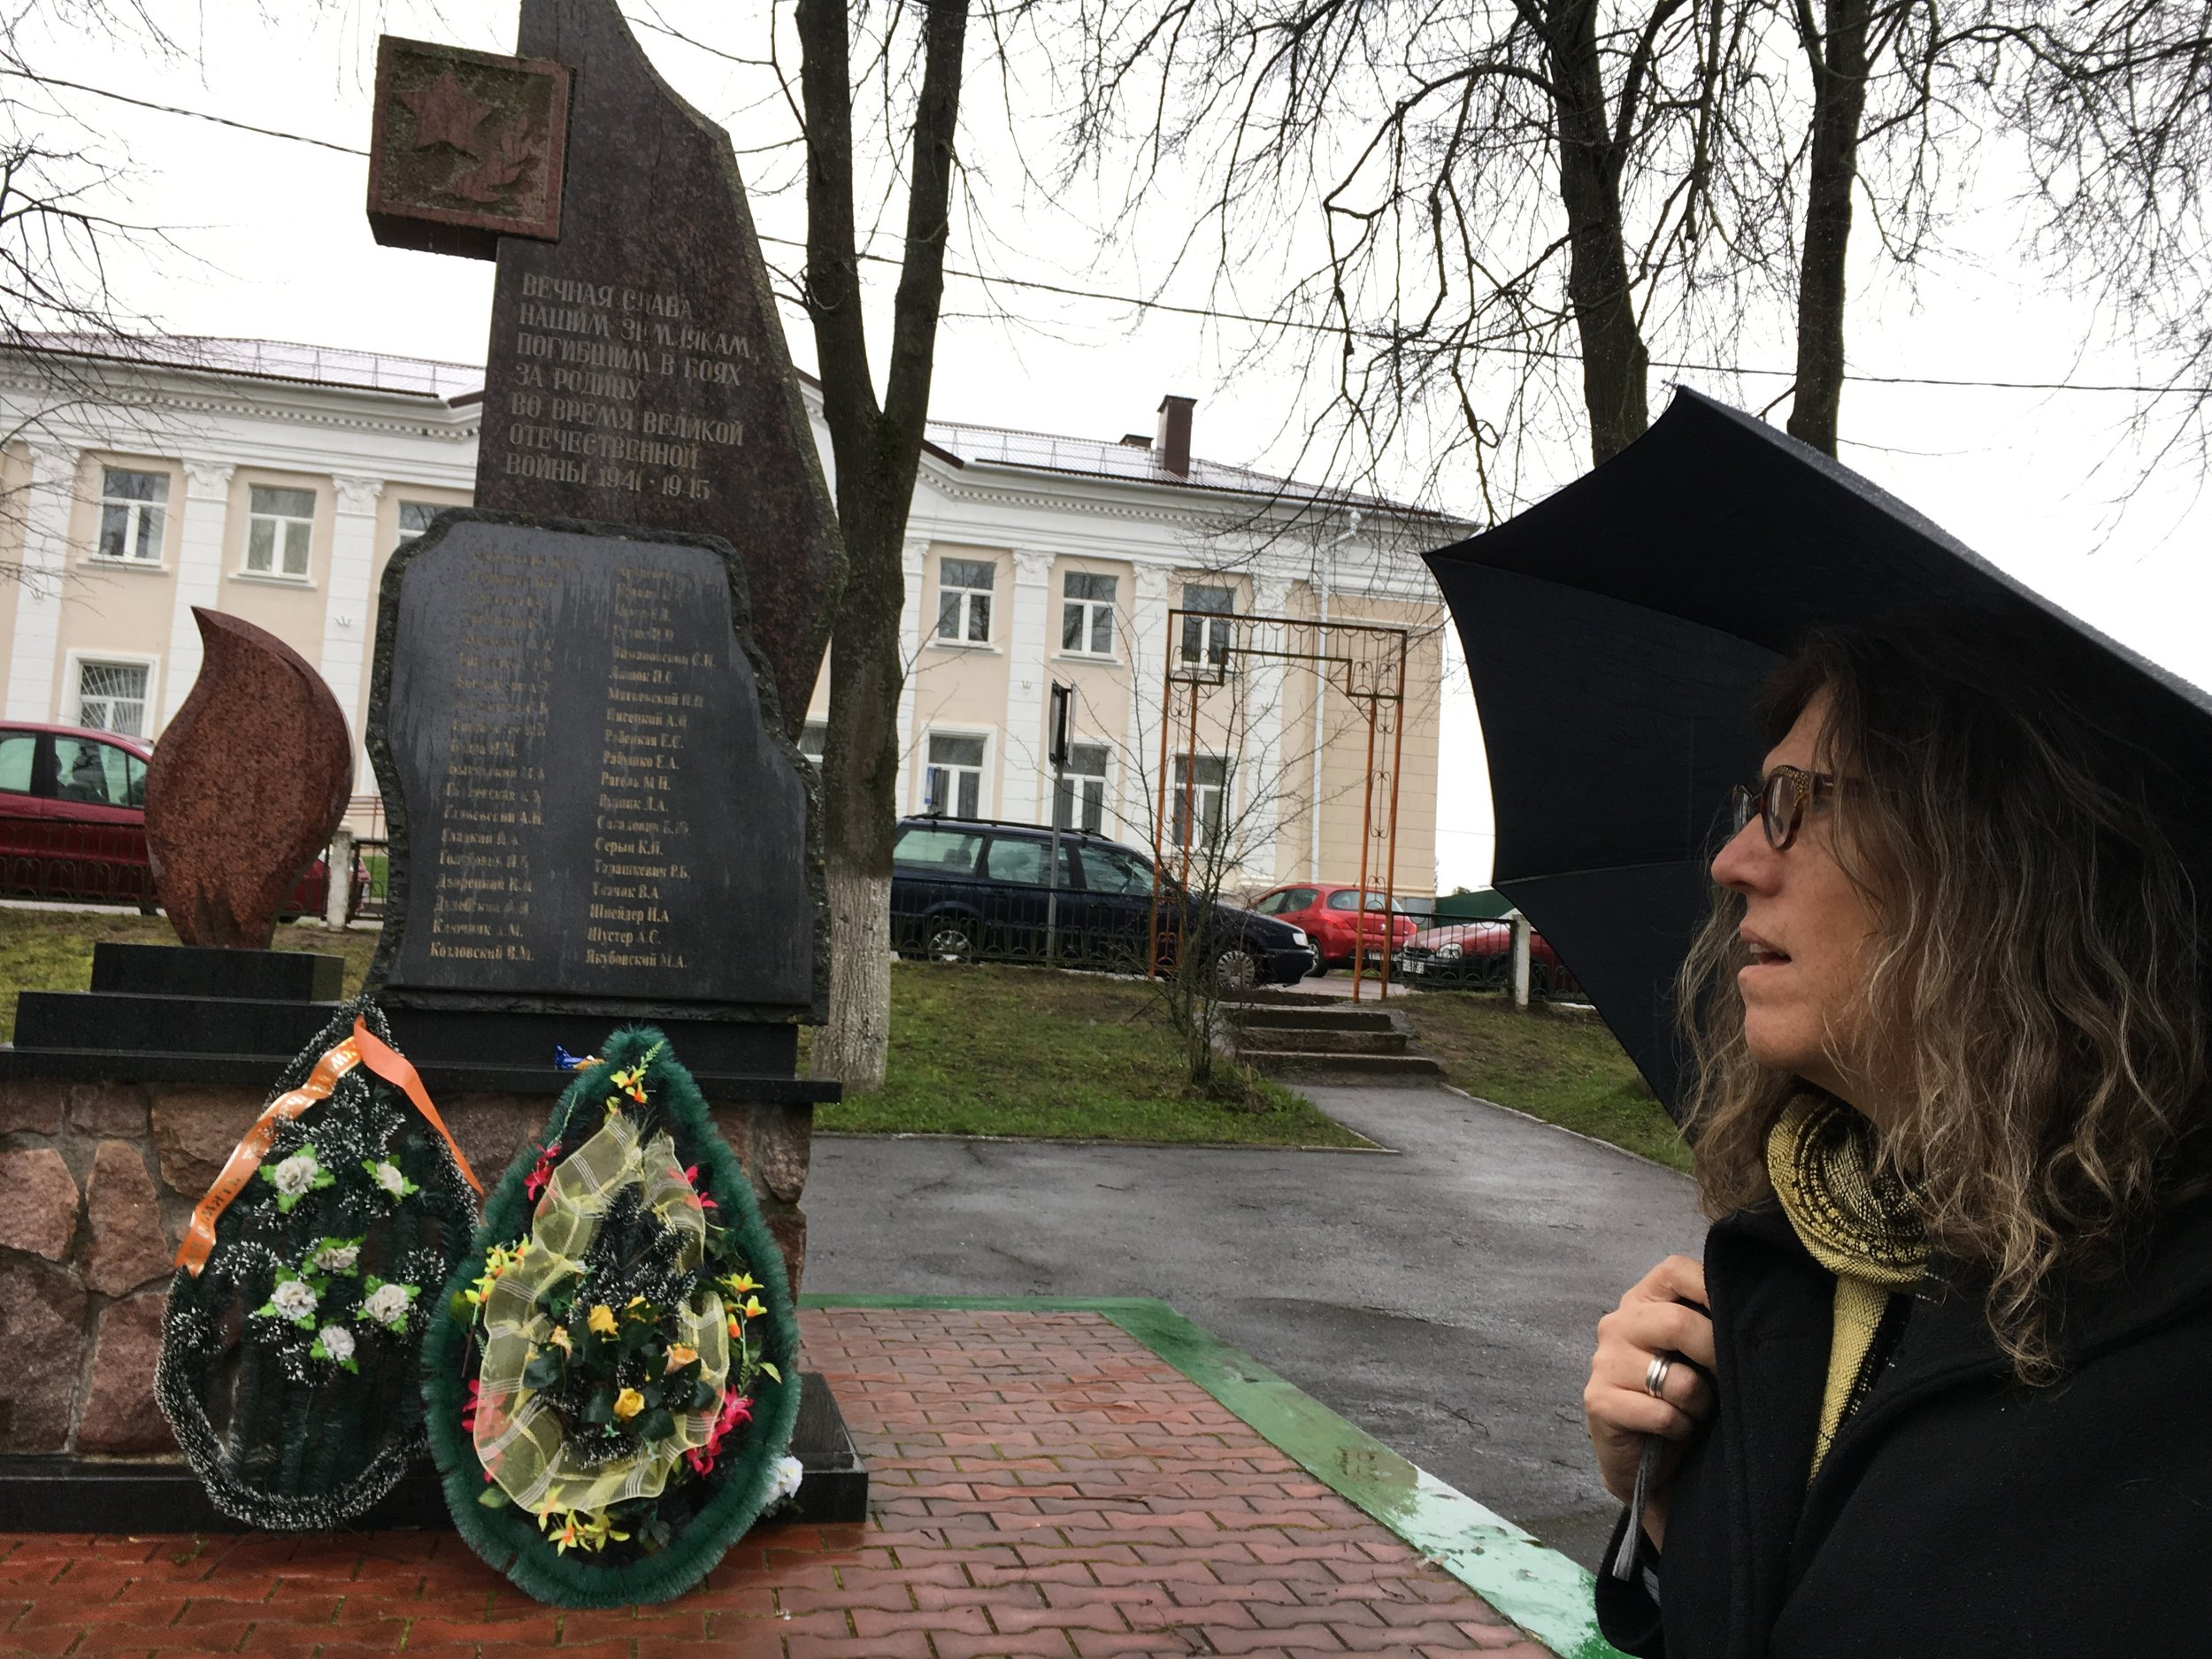 My partner Susan viewing the memorial to local men killed in WWII, a feature found in most Belarusian towns we visited.